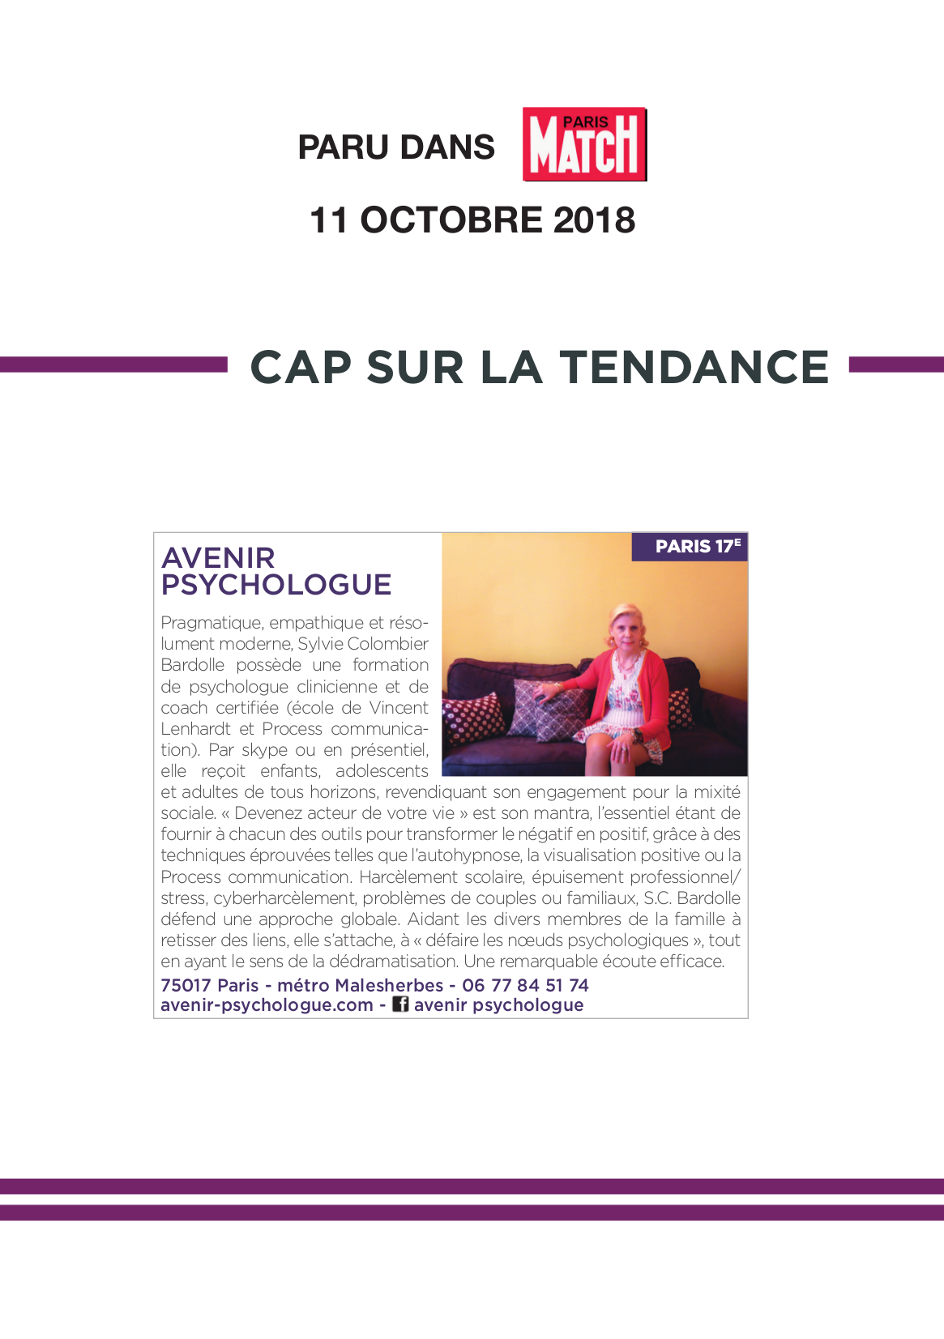 Avenir Psychologue Paris 17 - Gestion du stress, confiance en soi , communication adultes, adolescents et enfants